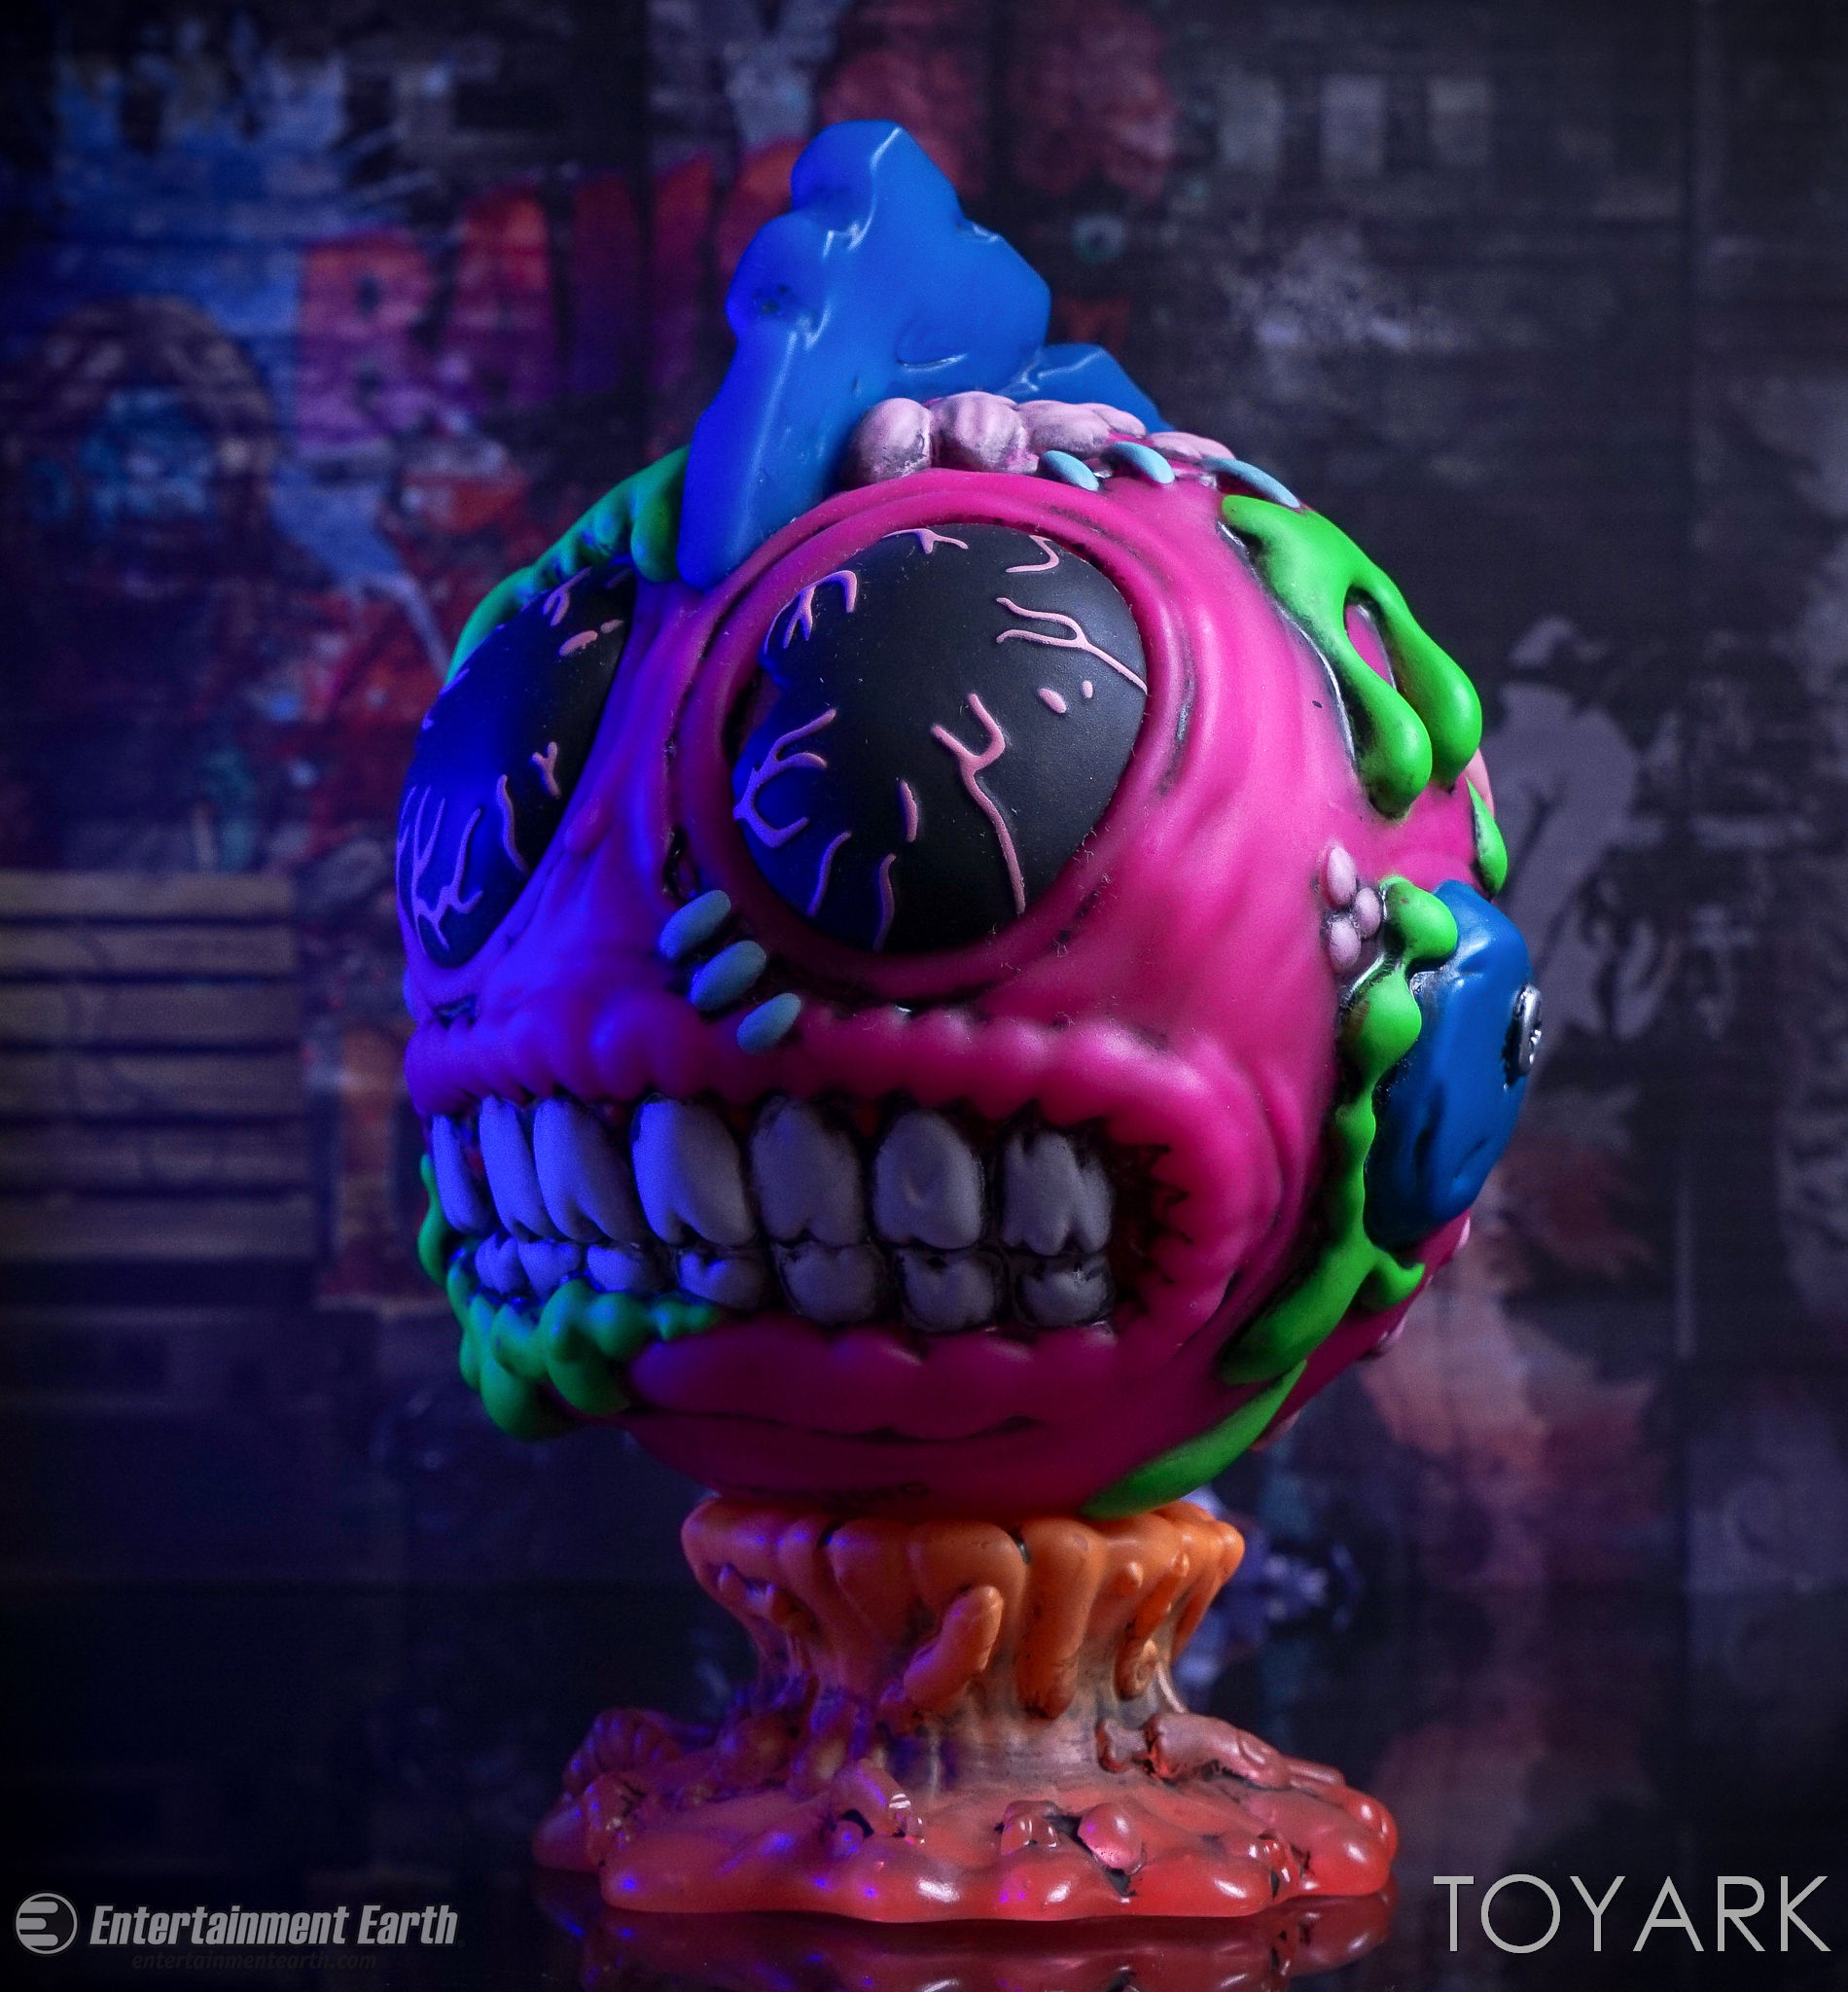 http://news.toyark.com/wp-content/uploads/sites/4/2017/02/Madballs-6-Inch-Medium-Figures-034.jpg